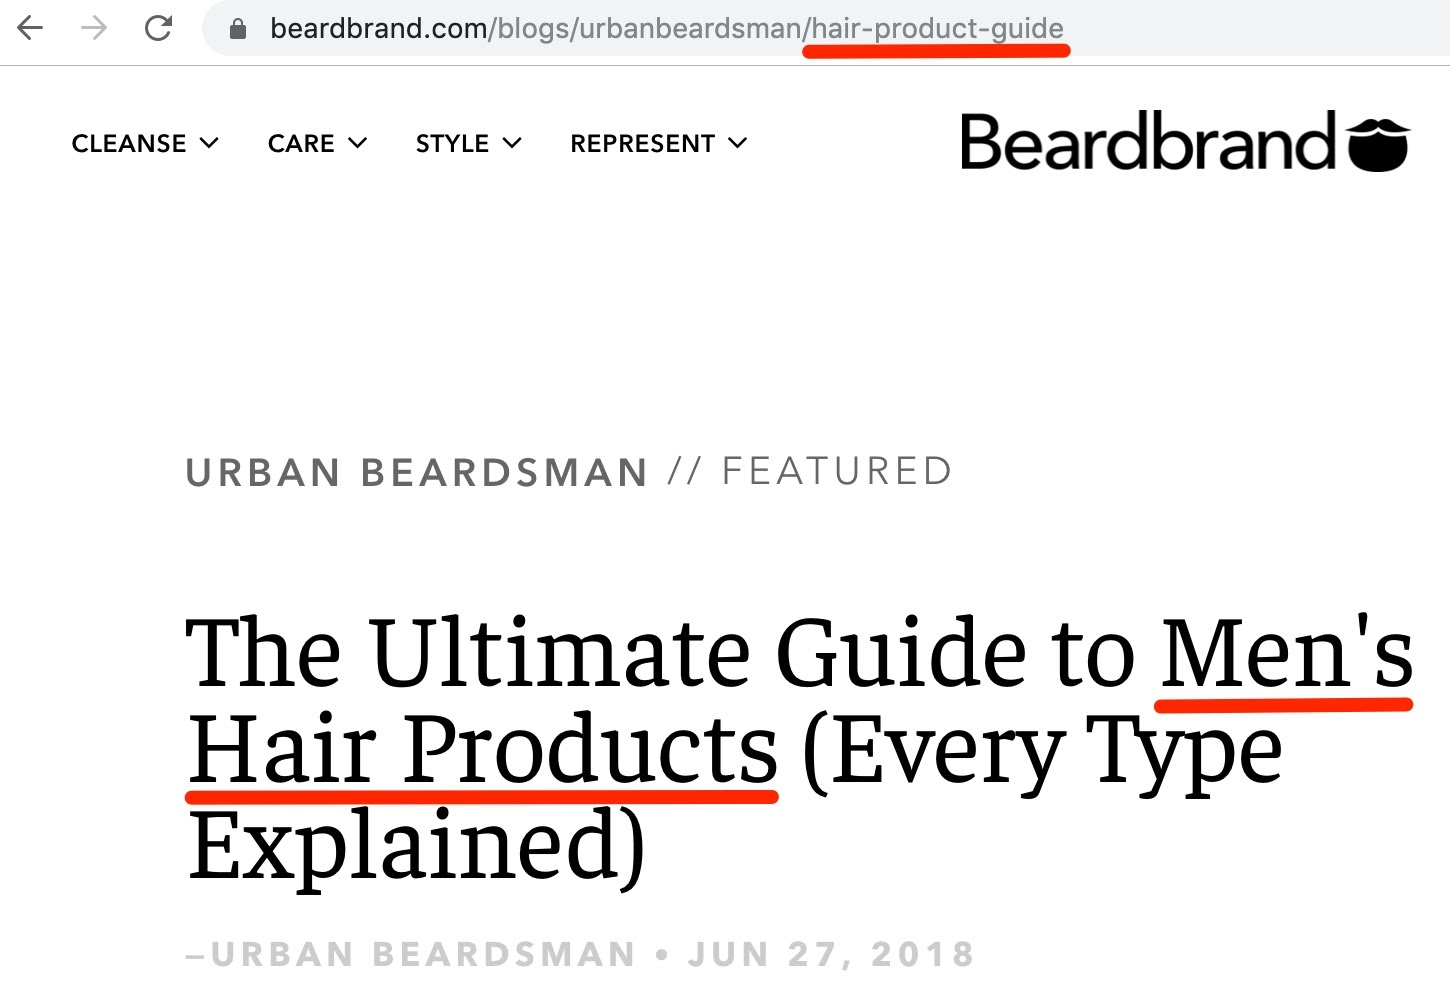 The Ultimate Guide to Men s Hair Products Every Type Explained Beardbrand